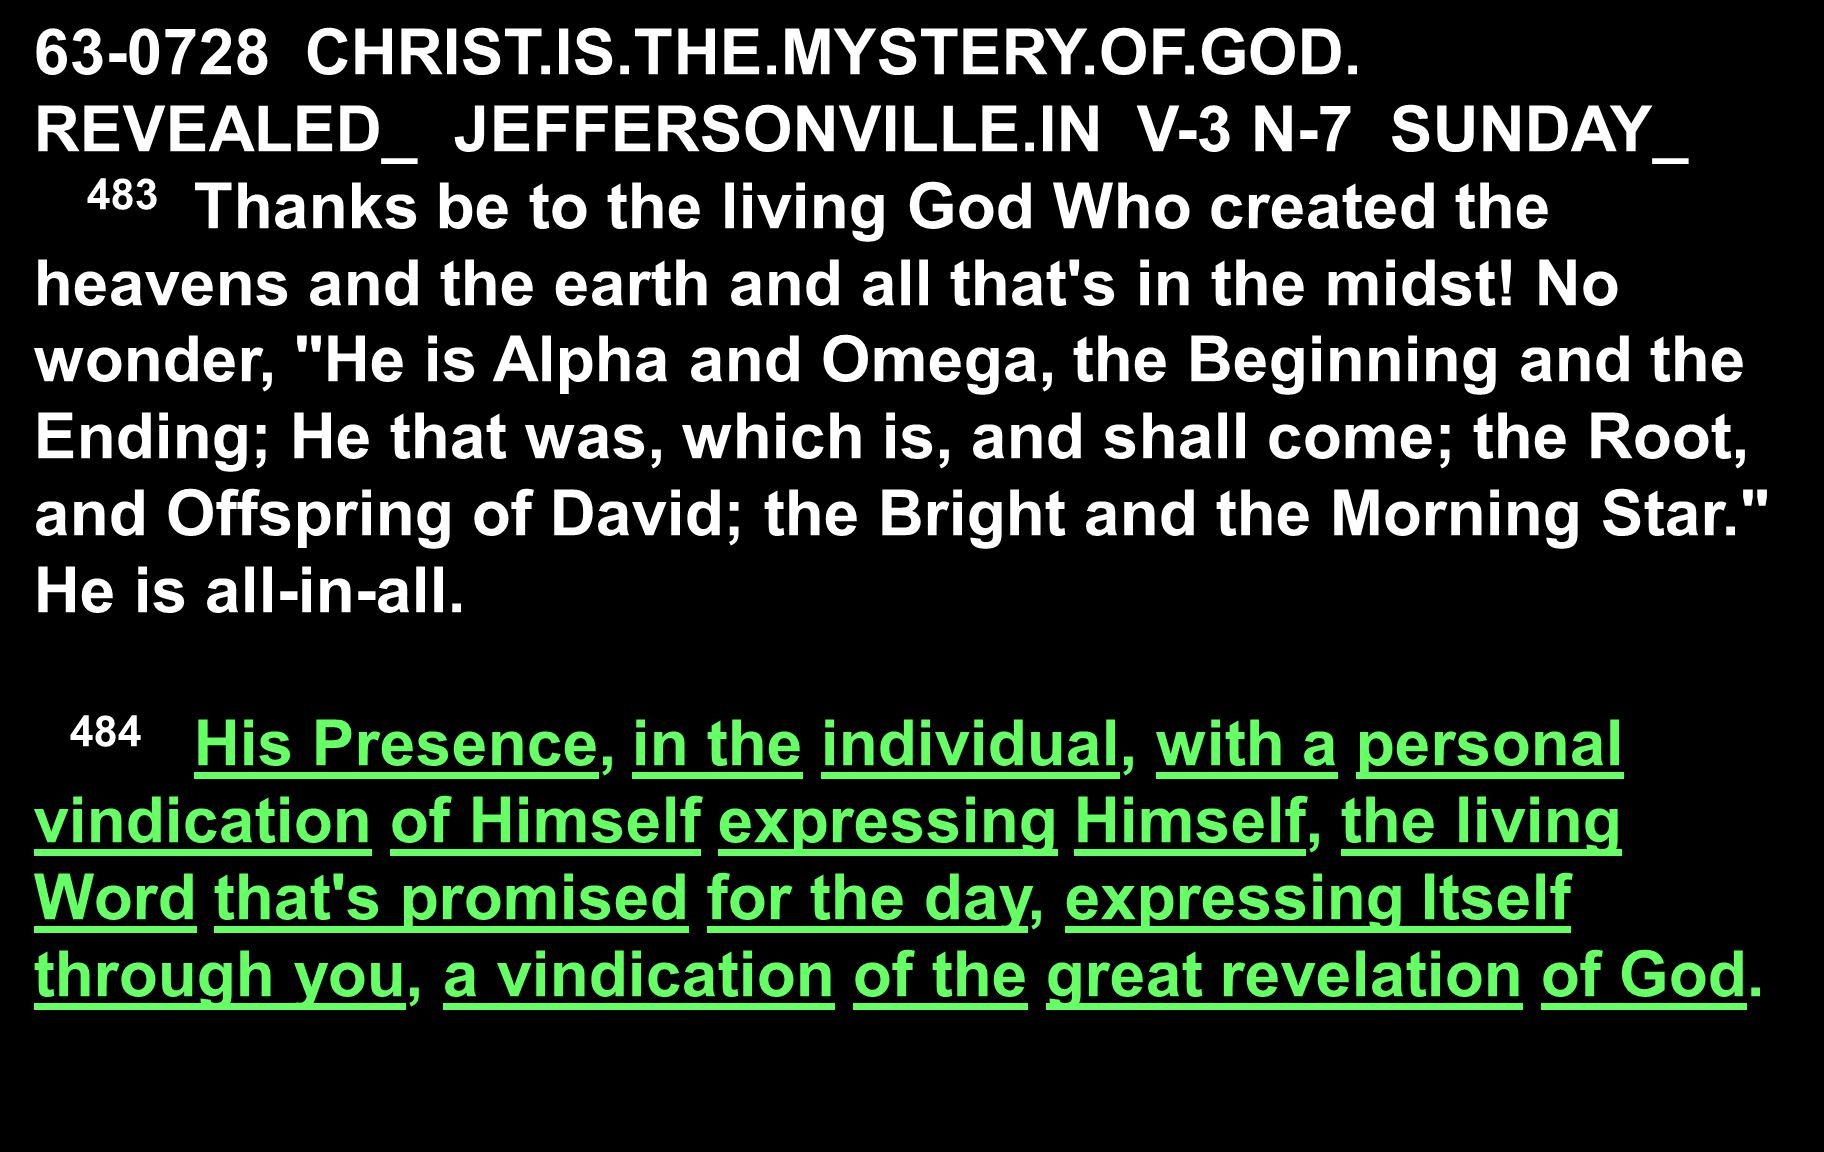 63-0728 CHRIST.IS.THE.MYSTERY.OF.GOD.